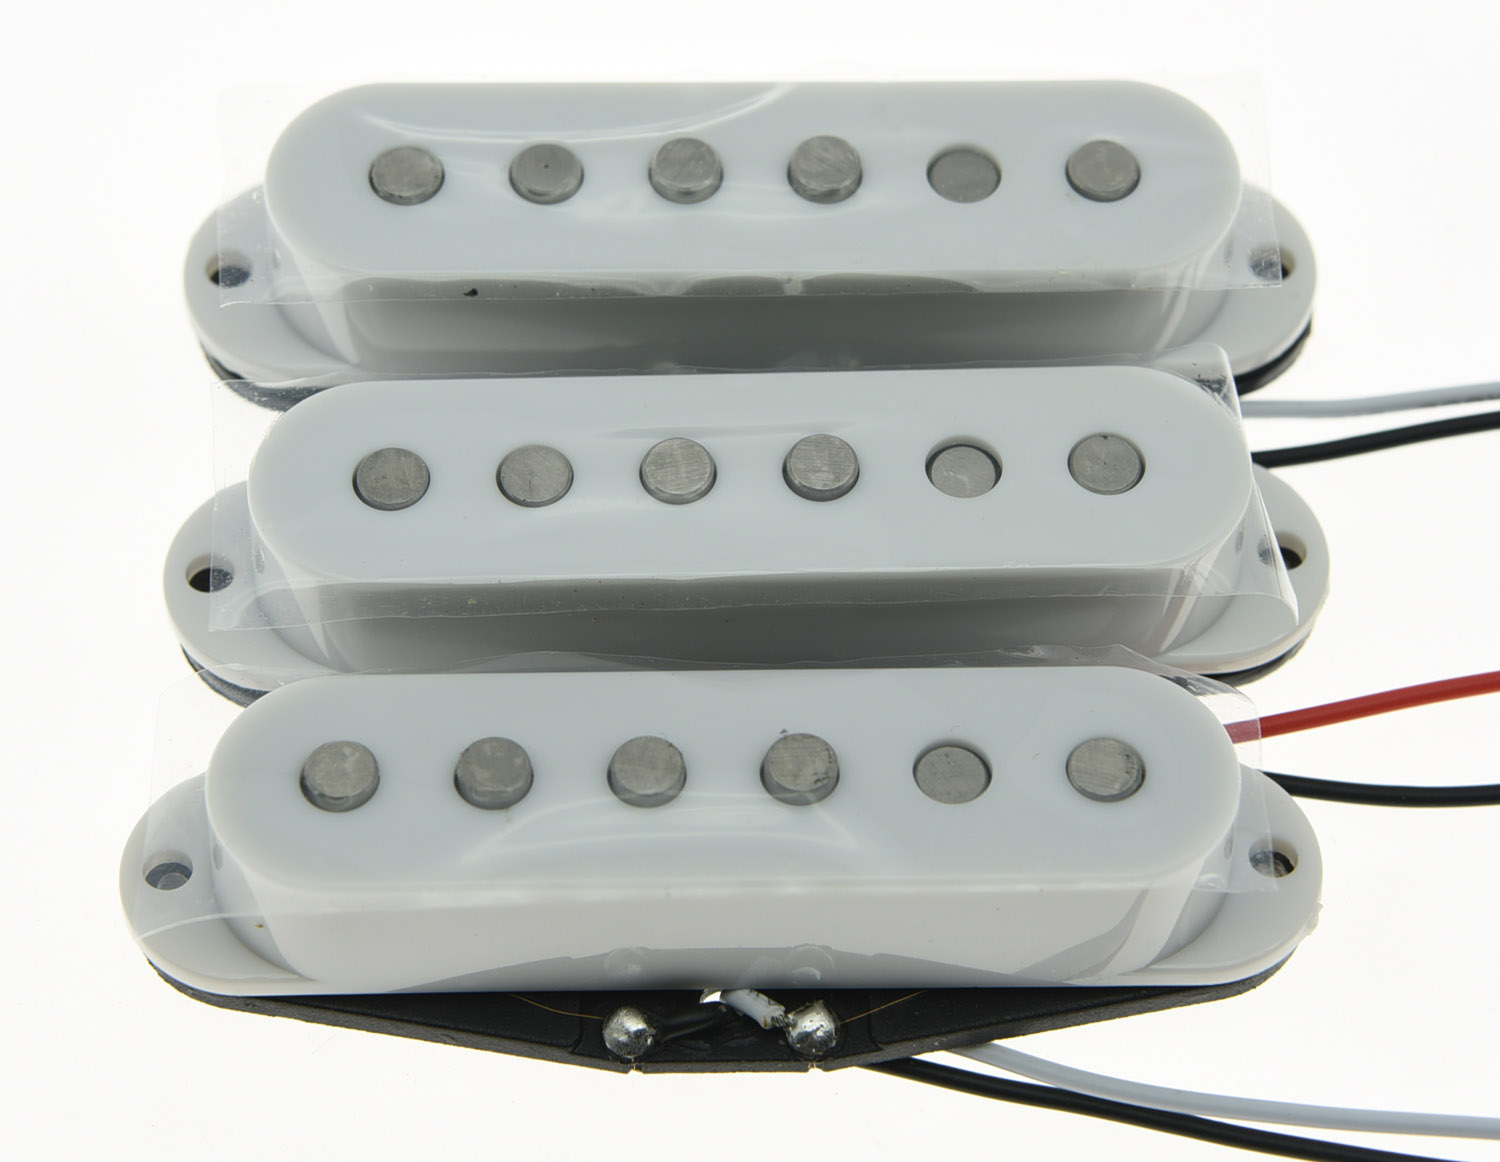 3x White Alnico 5 Single Coil Pickups ST Strat SSS Pickup Set tsai hotsale vintage voice single coil pickup for stratocaster ceramic bobbin alnico single coil guitar pickup staggered pole